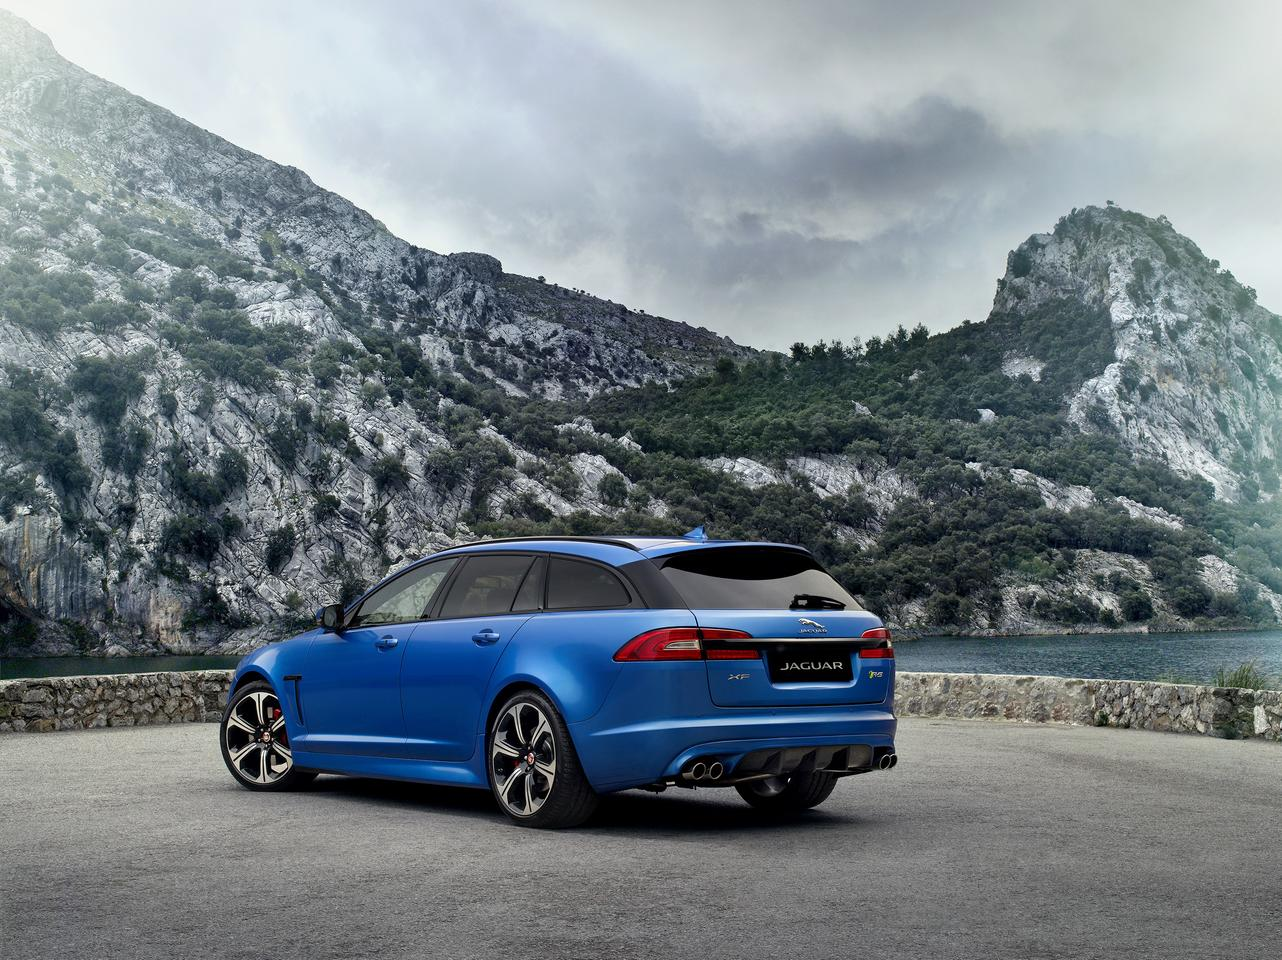 The Jaguar XFR-S Sportbrake's supercharged V8 produces a 0-60mph time of 4.6 seconds, just 0.2 seconds slower than the much-lighter XFR-S Saloon